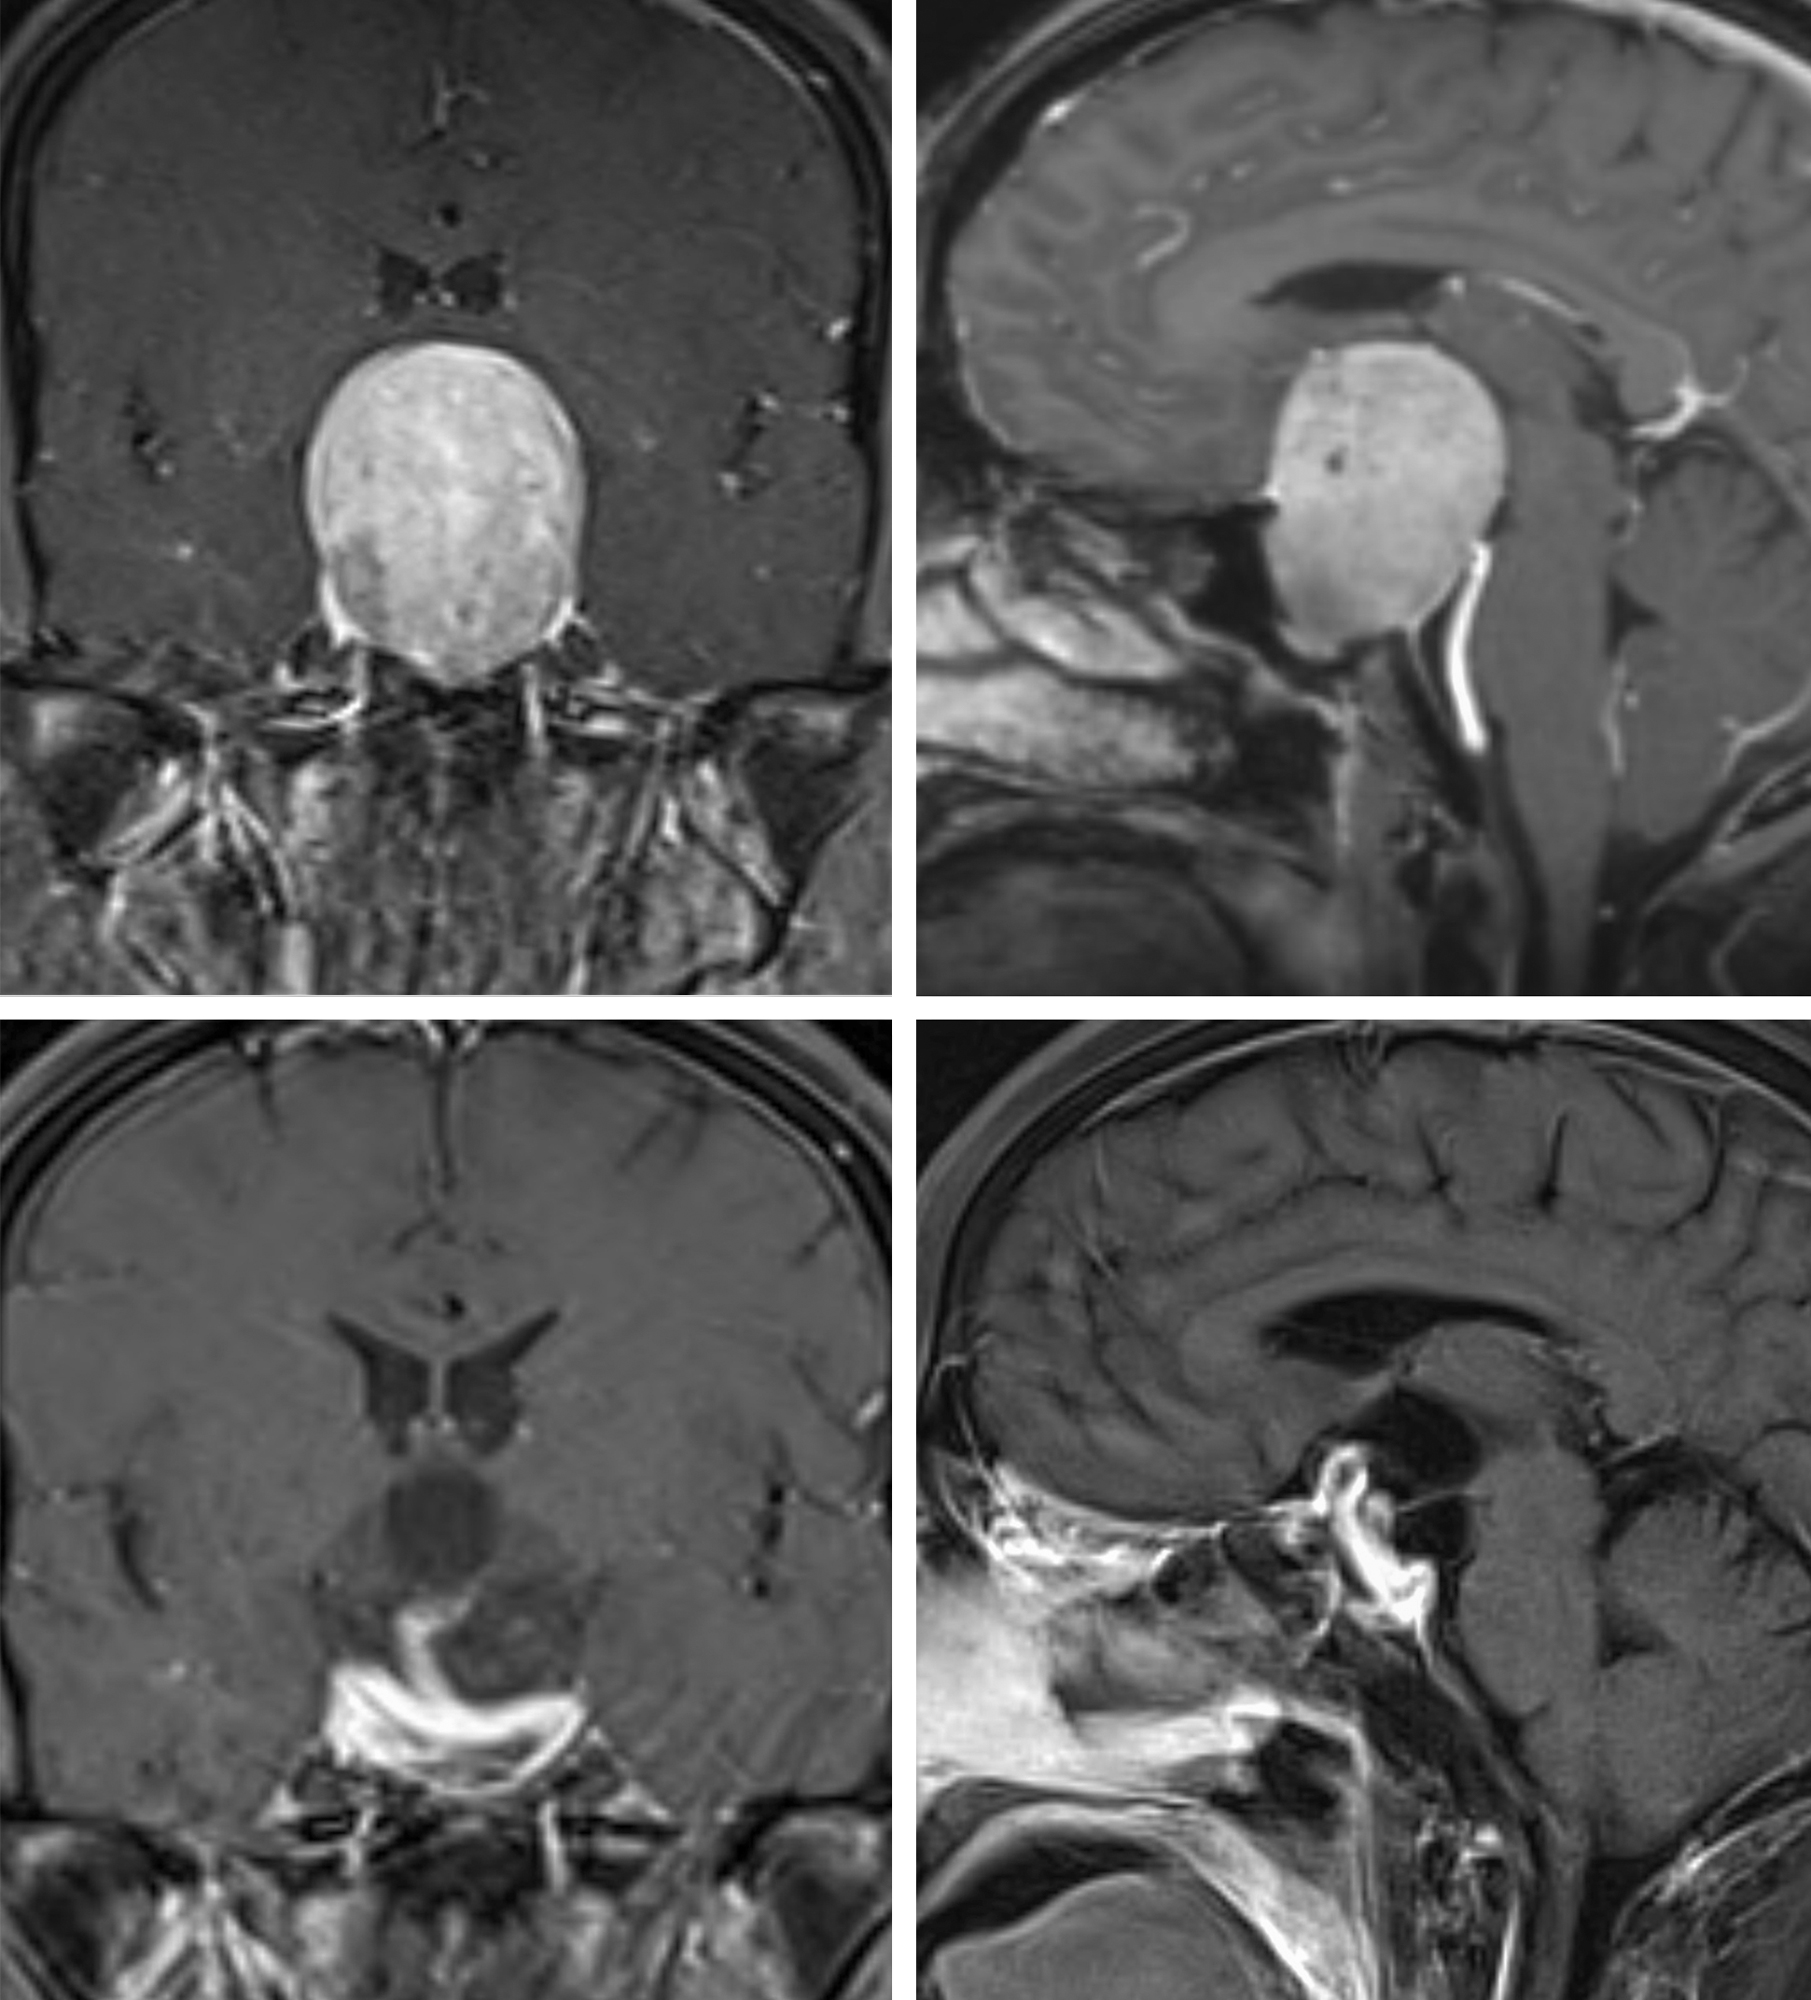 Figure 1: Giant pituitary adenomas can present in a variety of shapes; the morphology of the tumor can significantly affect the technical difficulty of resection. A compact globular morphology is shown in the images in the top row. Cavernous sinus invasion is not evident. Endoscopic endonasal transsphenoidal surgery is effective in gross total tumor resection while preserving the pituitary gland (bottom row).